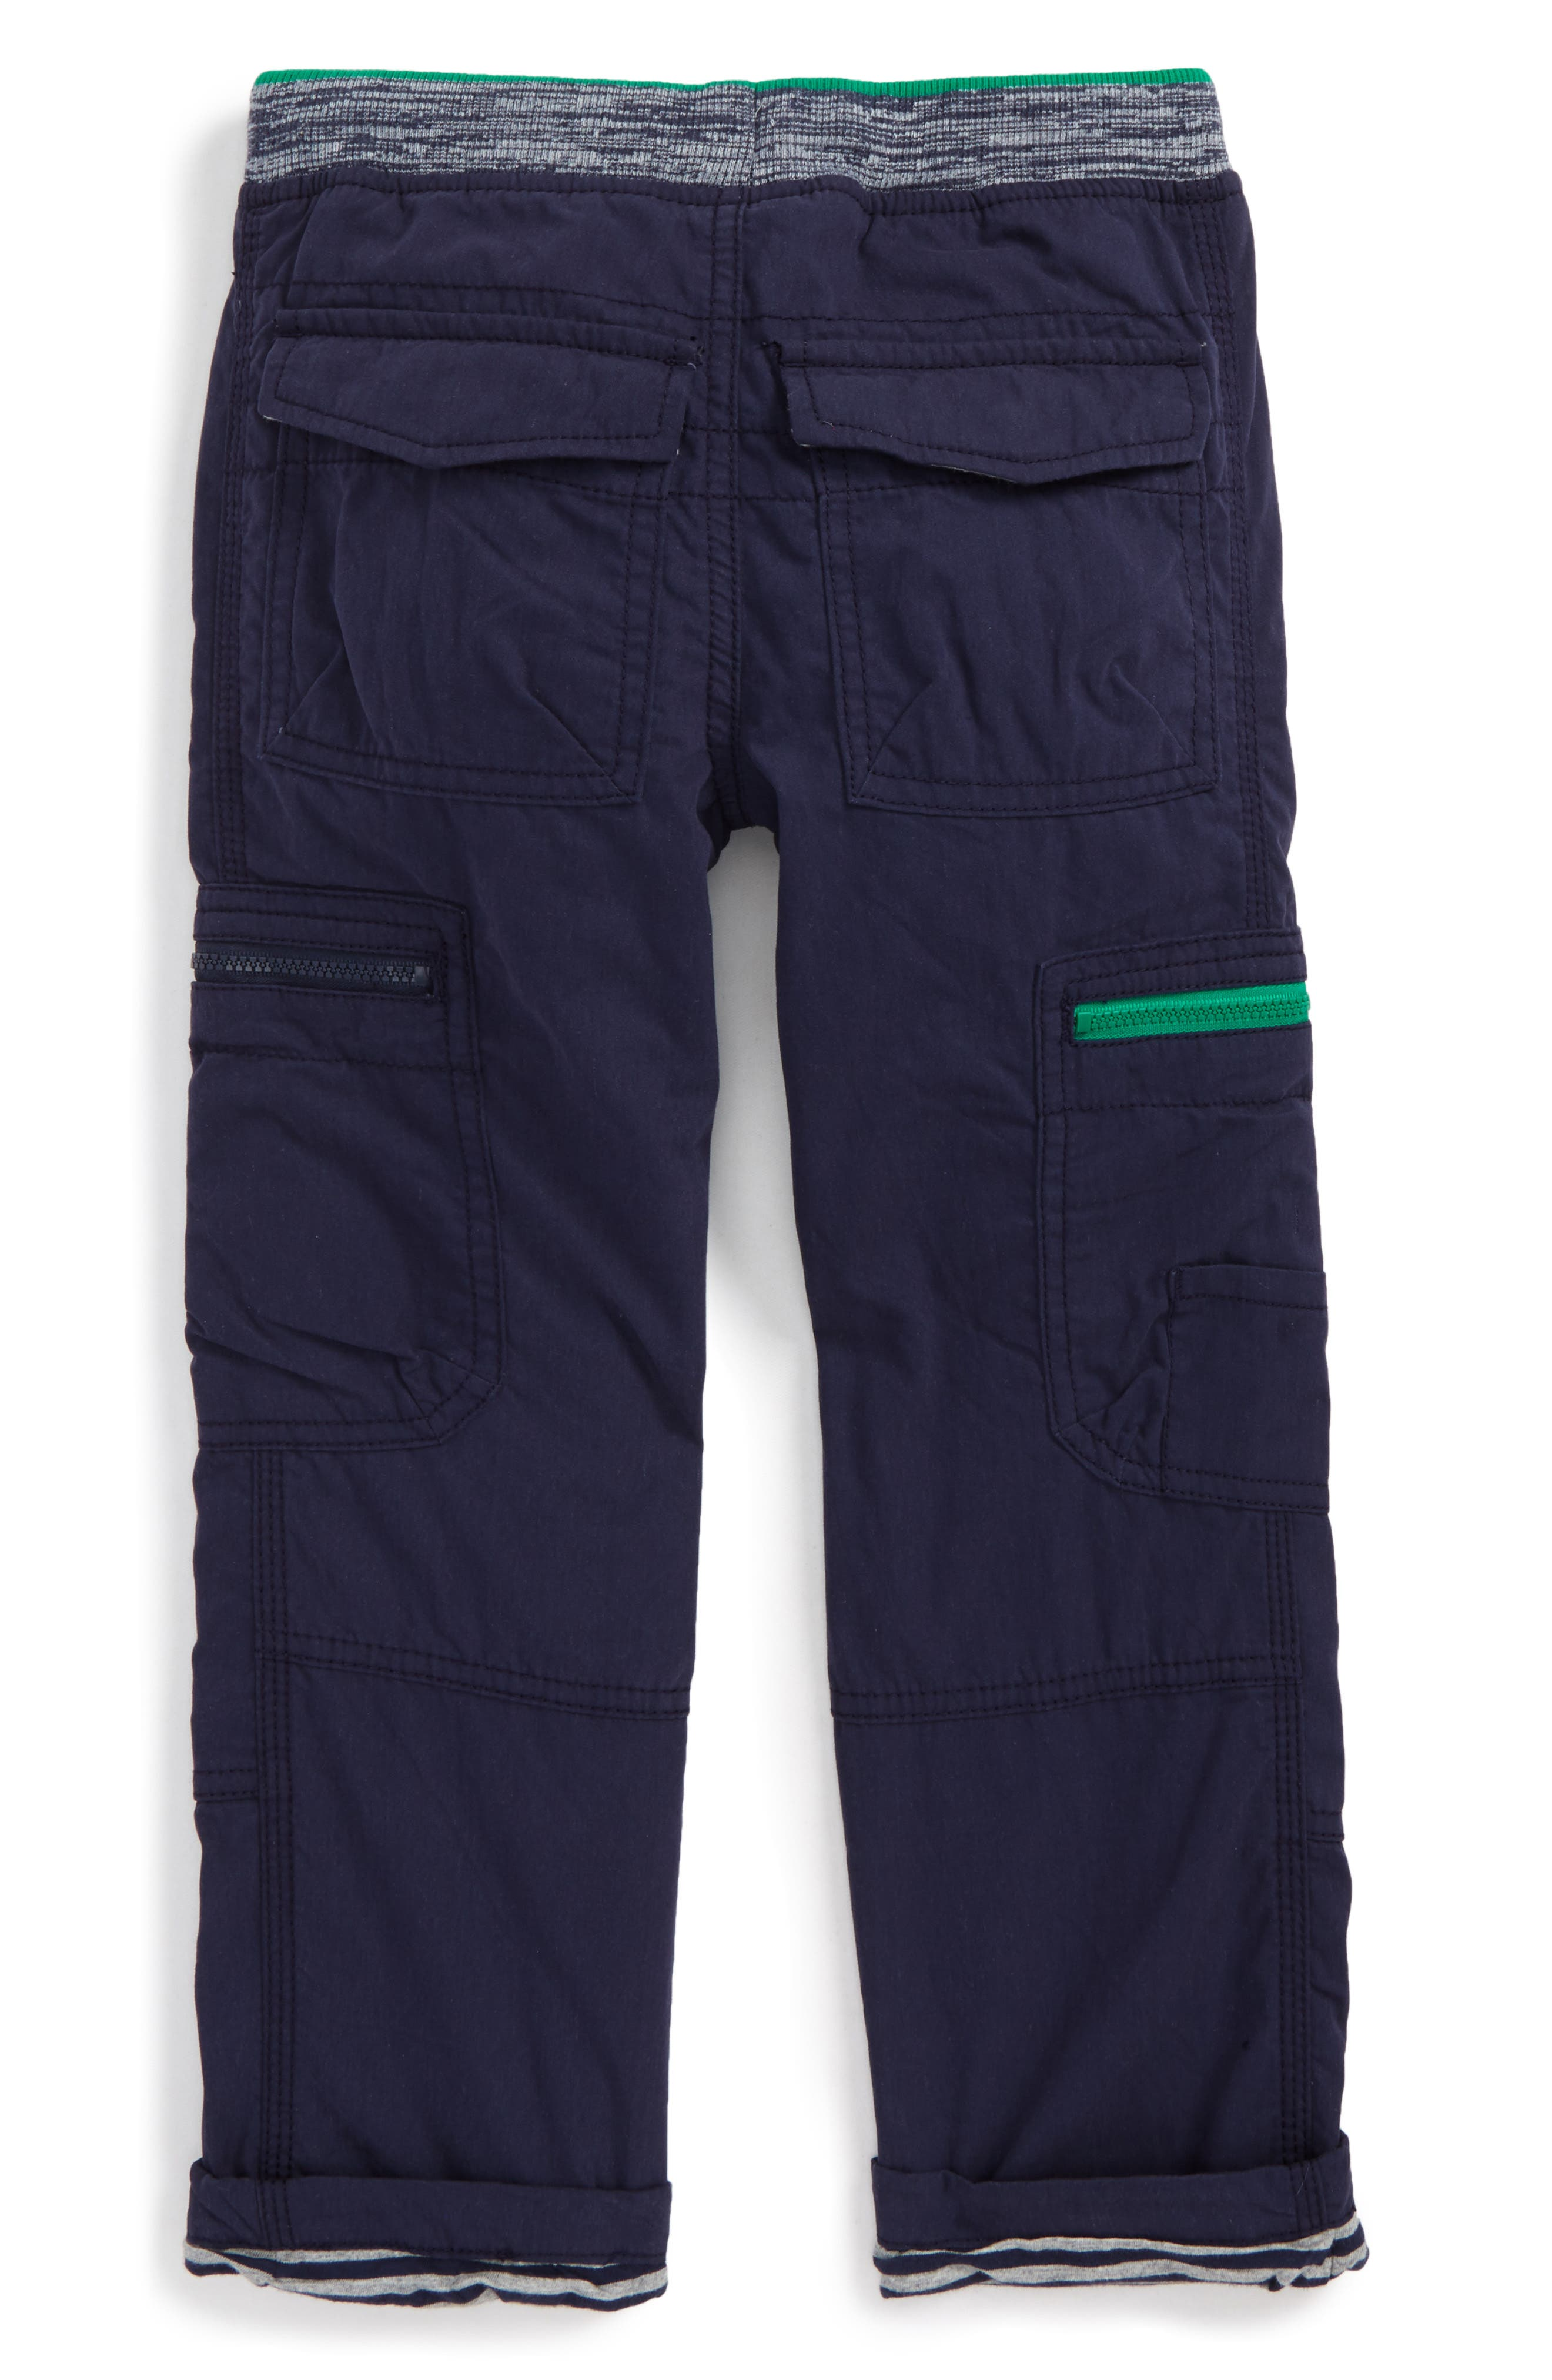 Lined Cargo Pants,                             Alternate thumbnail 2, color,                             Navy